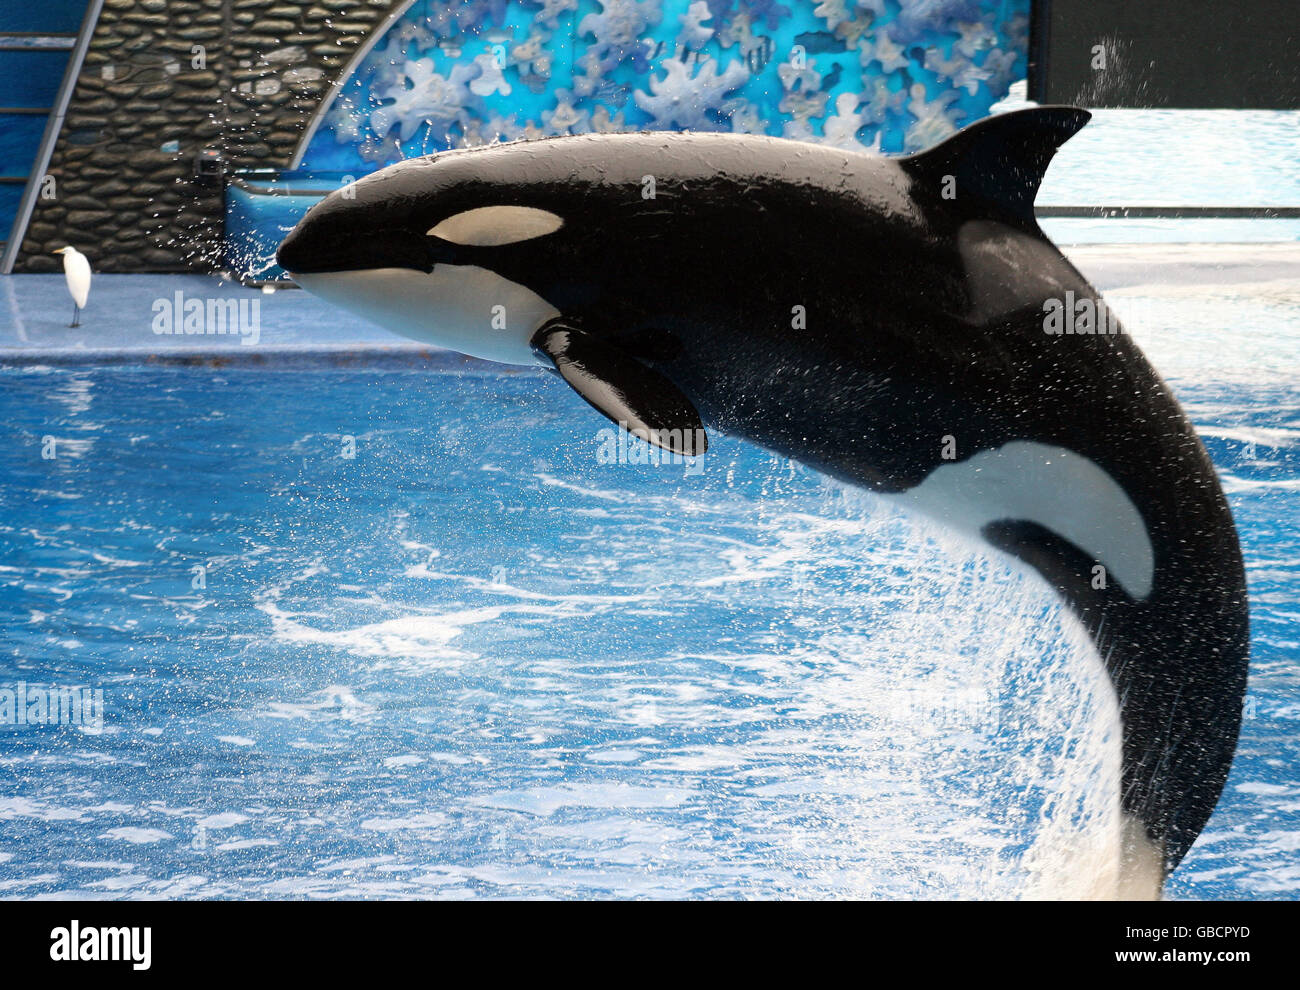 A killer whale jumping out of the water. - Stock Image